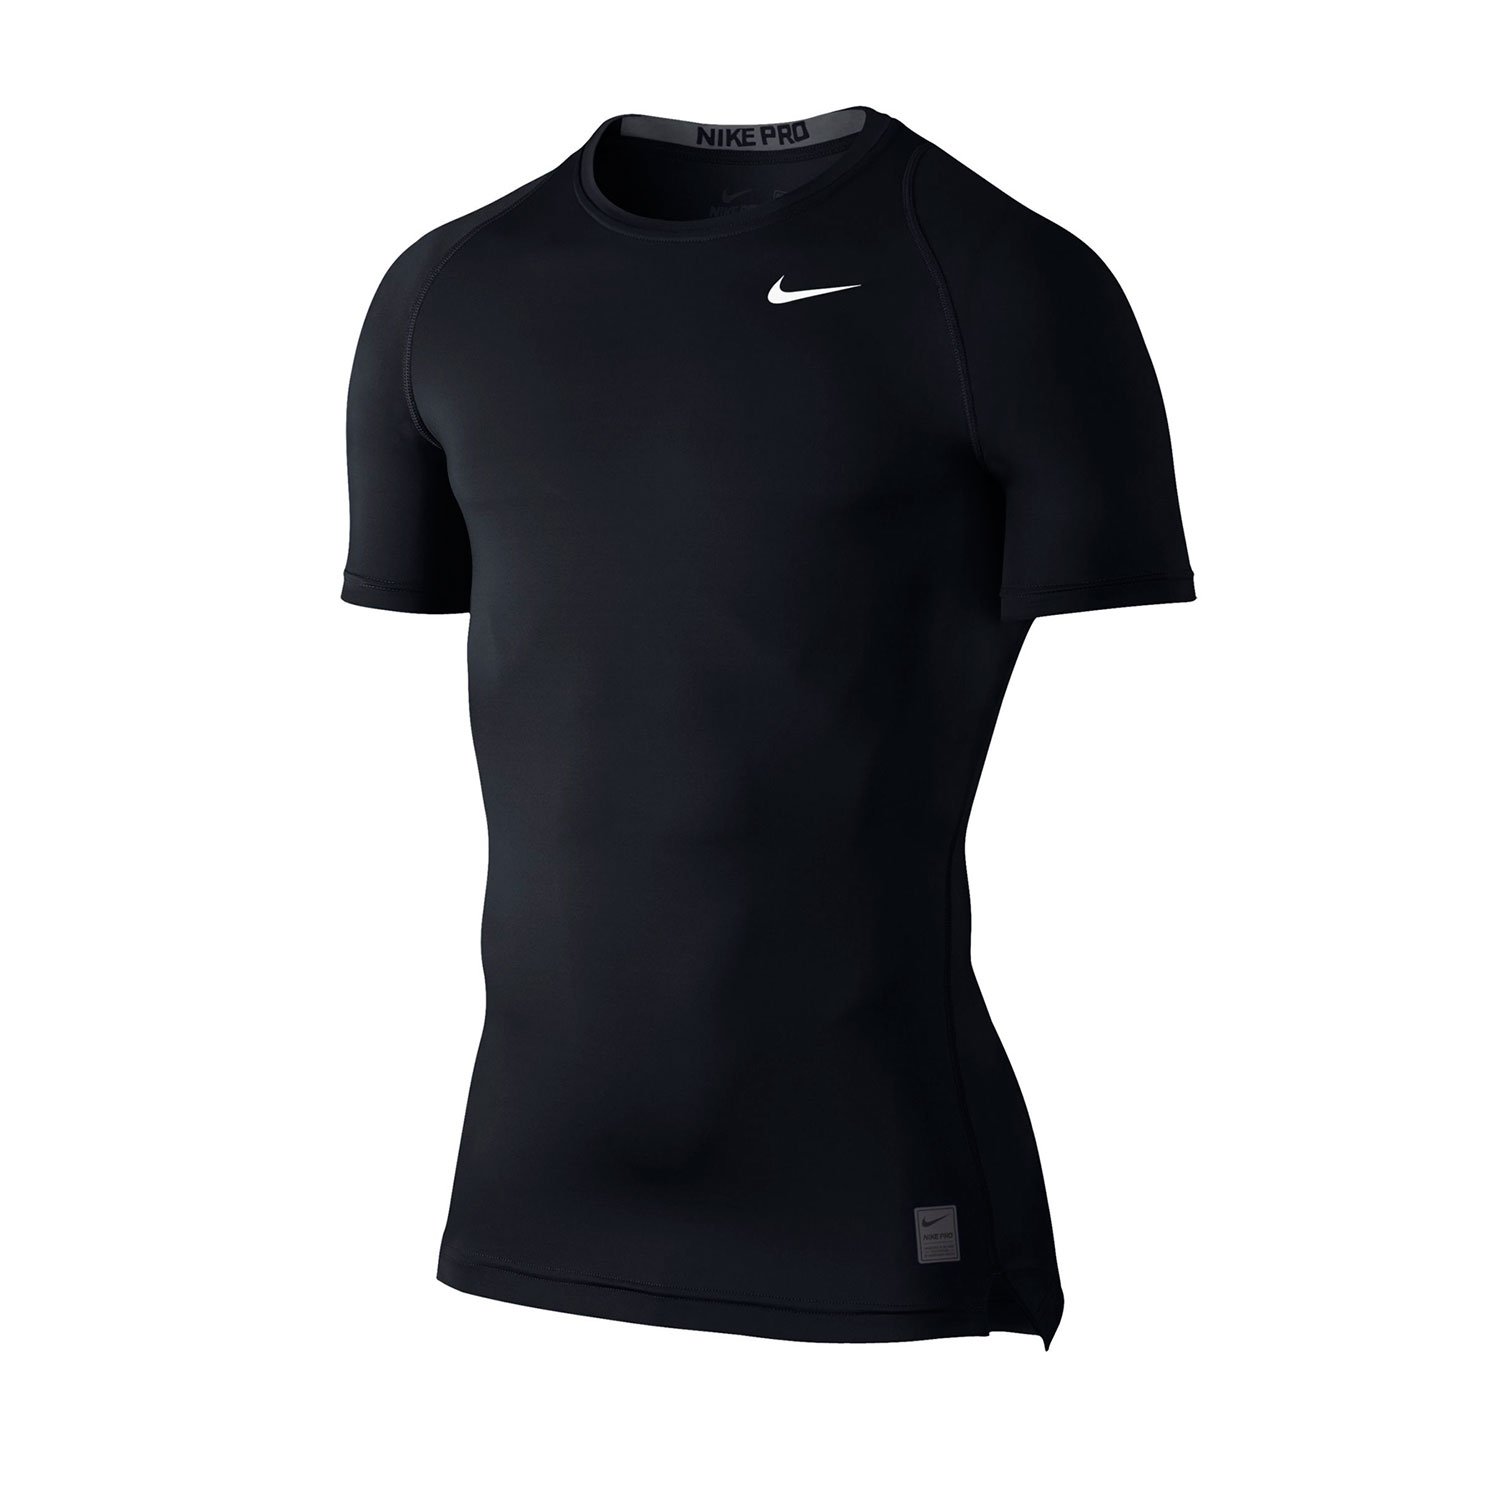 Nike Men S Hypercool Compression Short Sleeve T Shirt